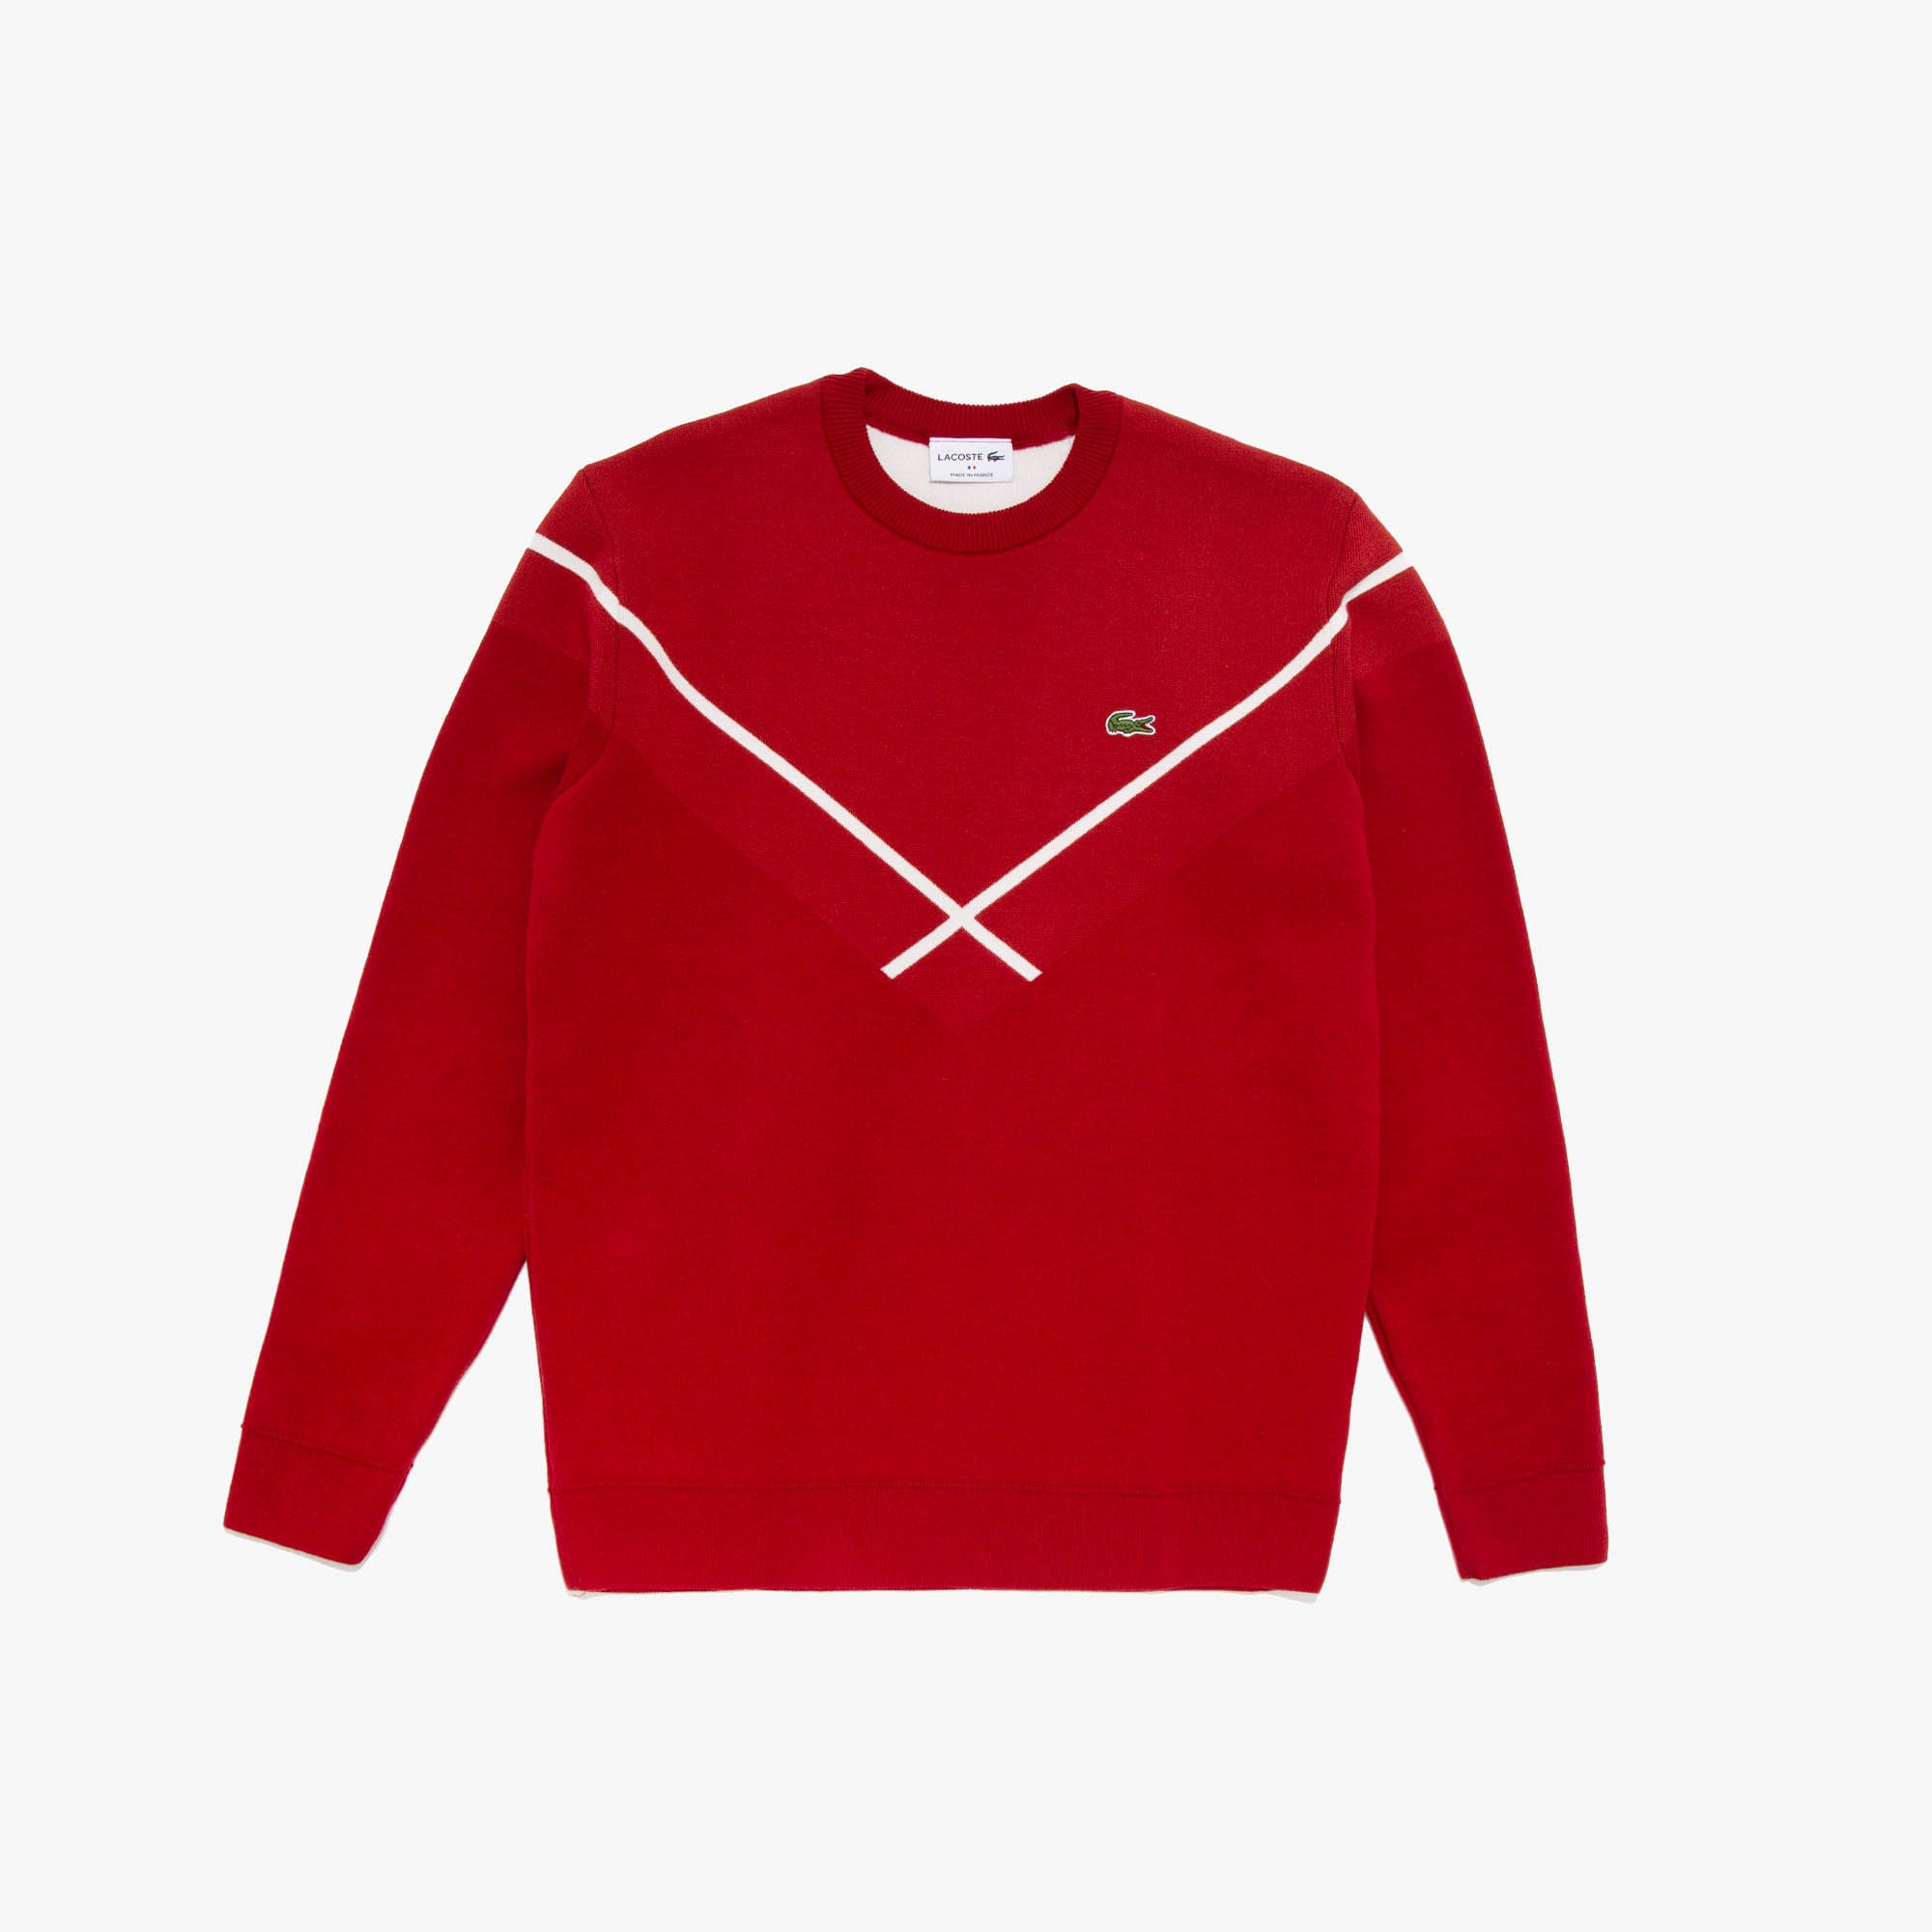 Men's Made In France Crewneck Jacquard Sweater